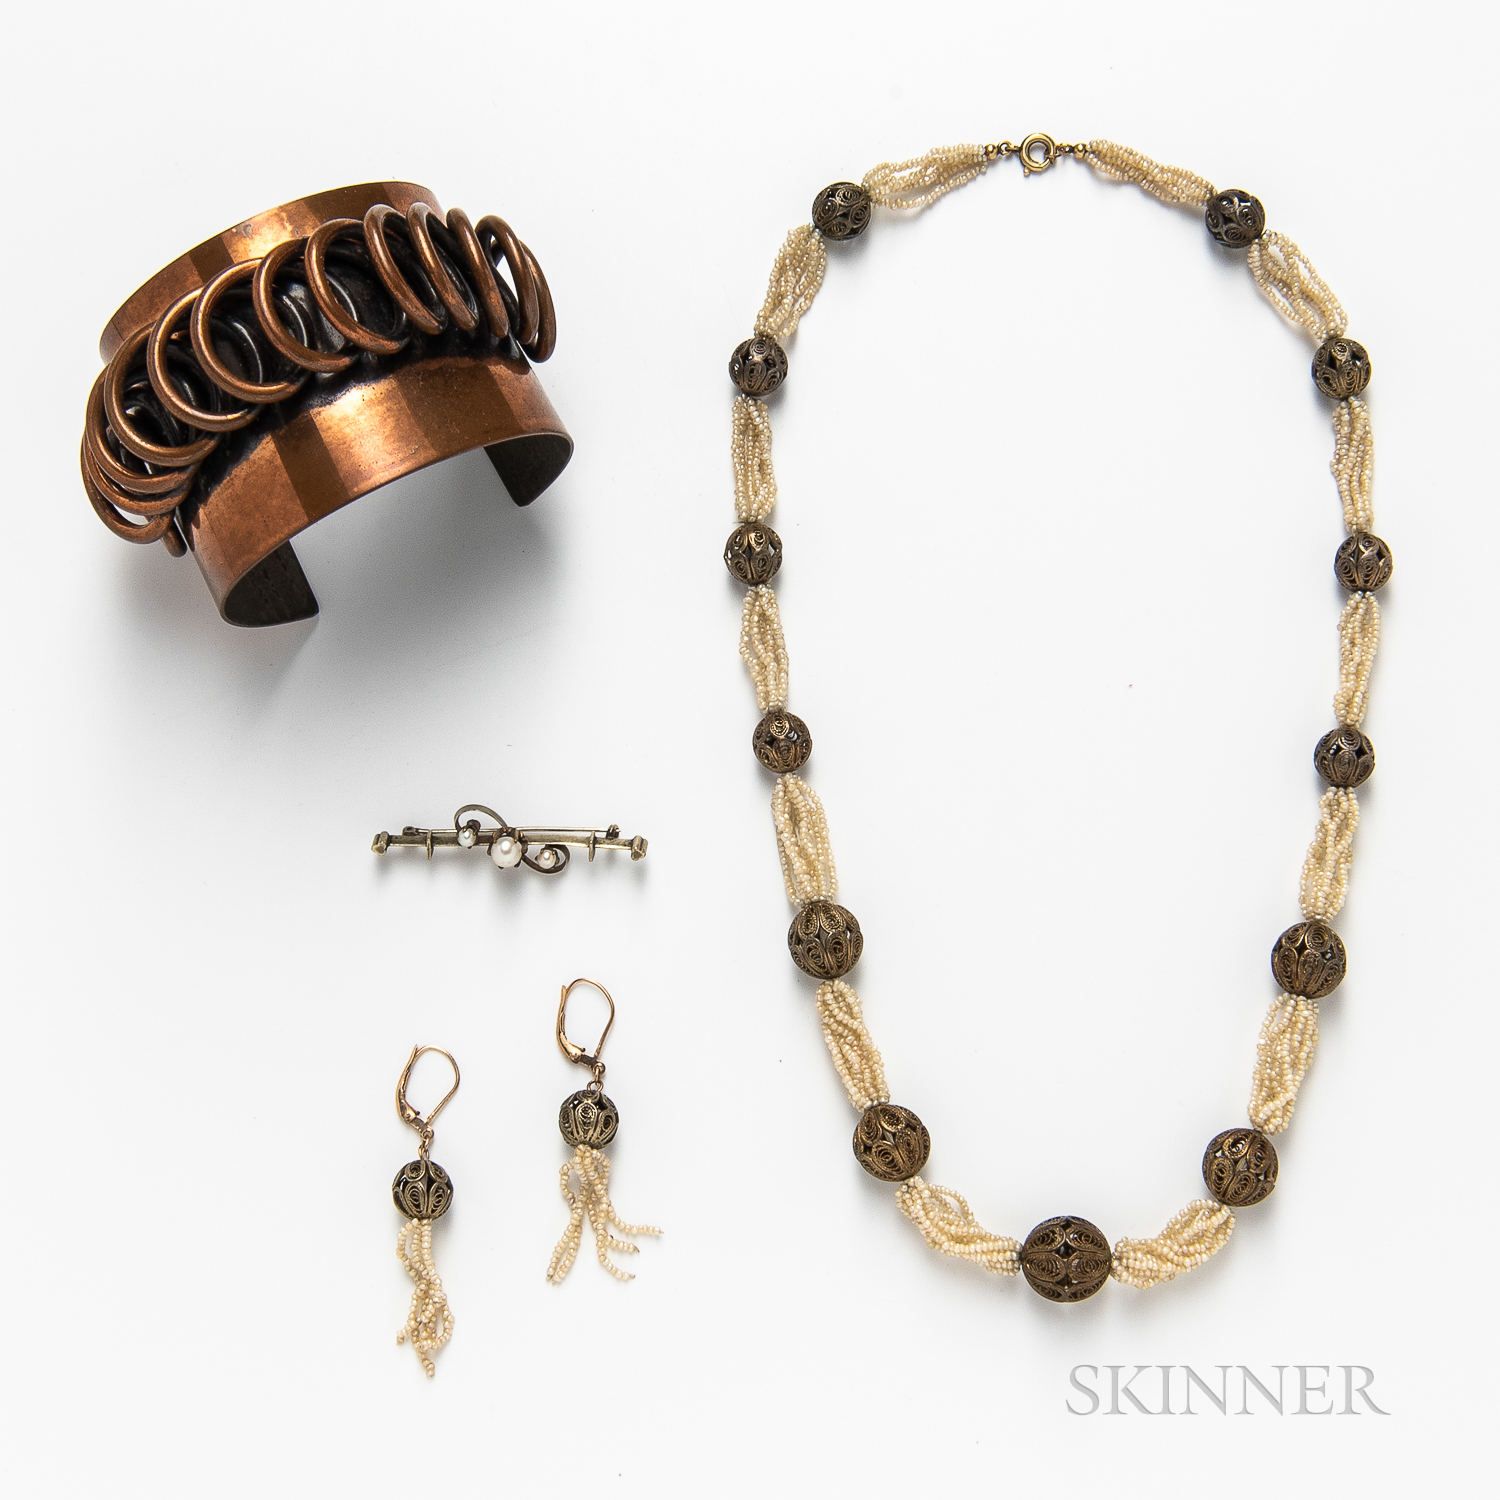 Rebajes Copper Cuff, a Pearl-set Brooch, a Silver-plated Hairpin, and a Seed Pearl and Filigree Bead Necklace and Earring Suite